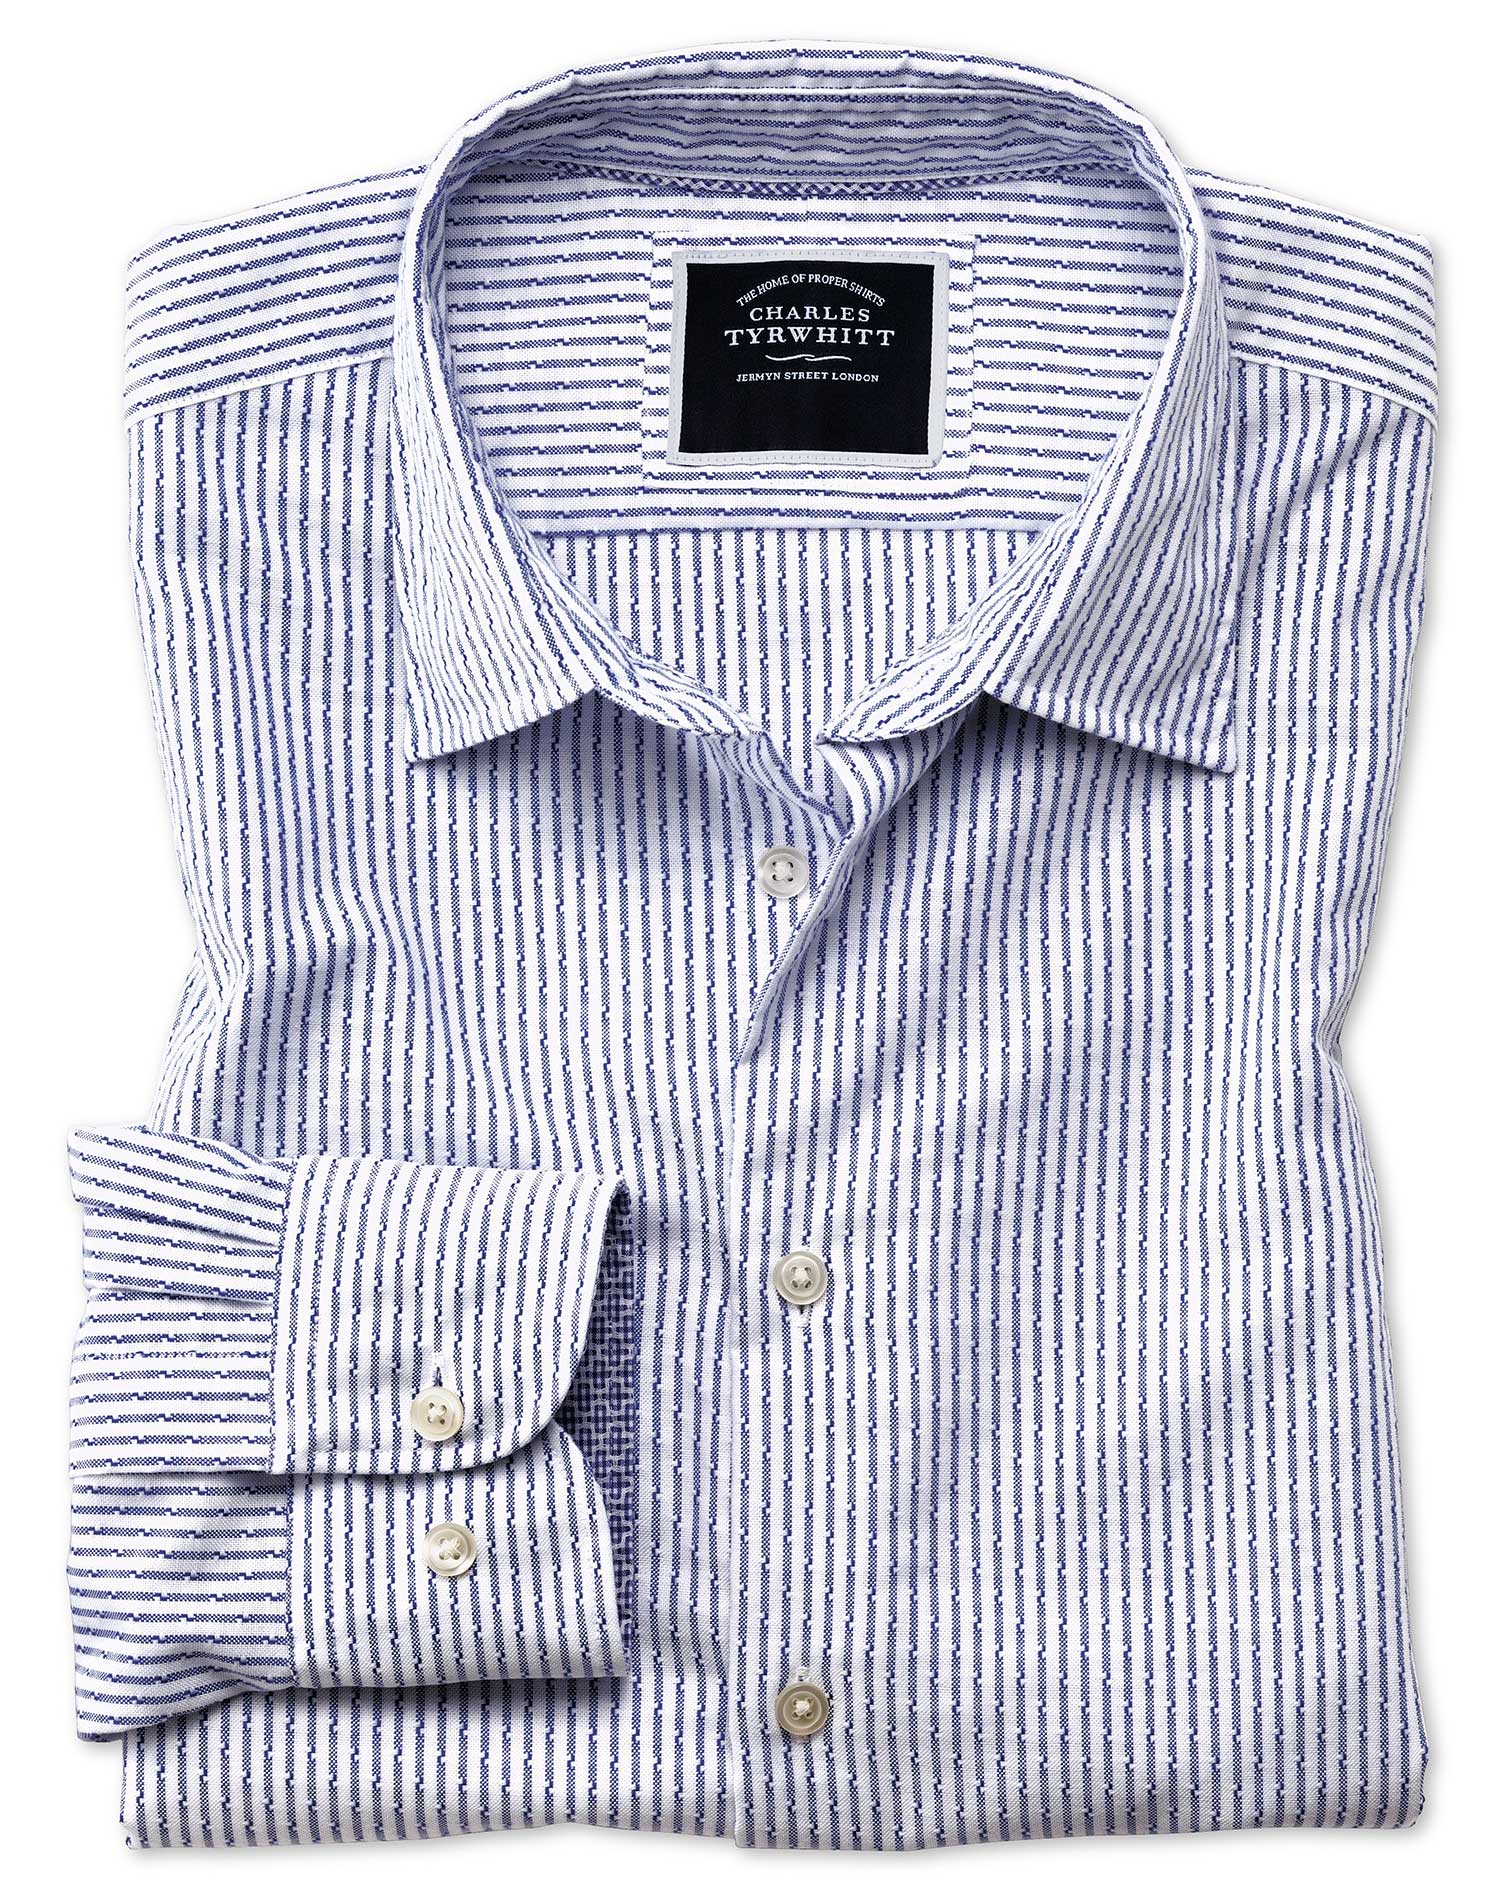 Slim Fit Washed White and Blue Striped Textured Cotton Shirt Single Cuff Size XS by Charles Tyrwhitt